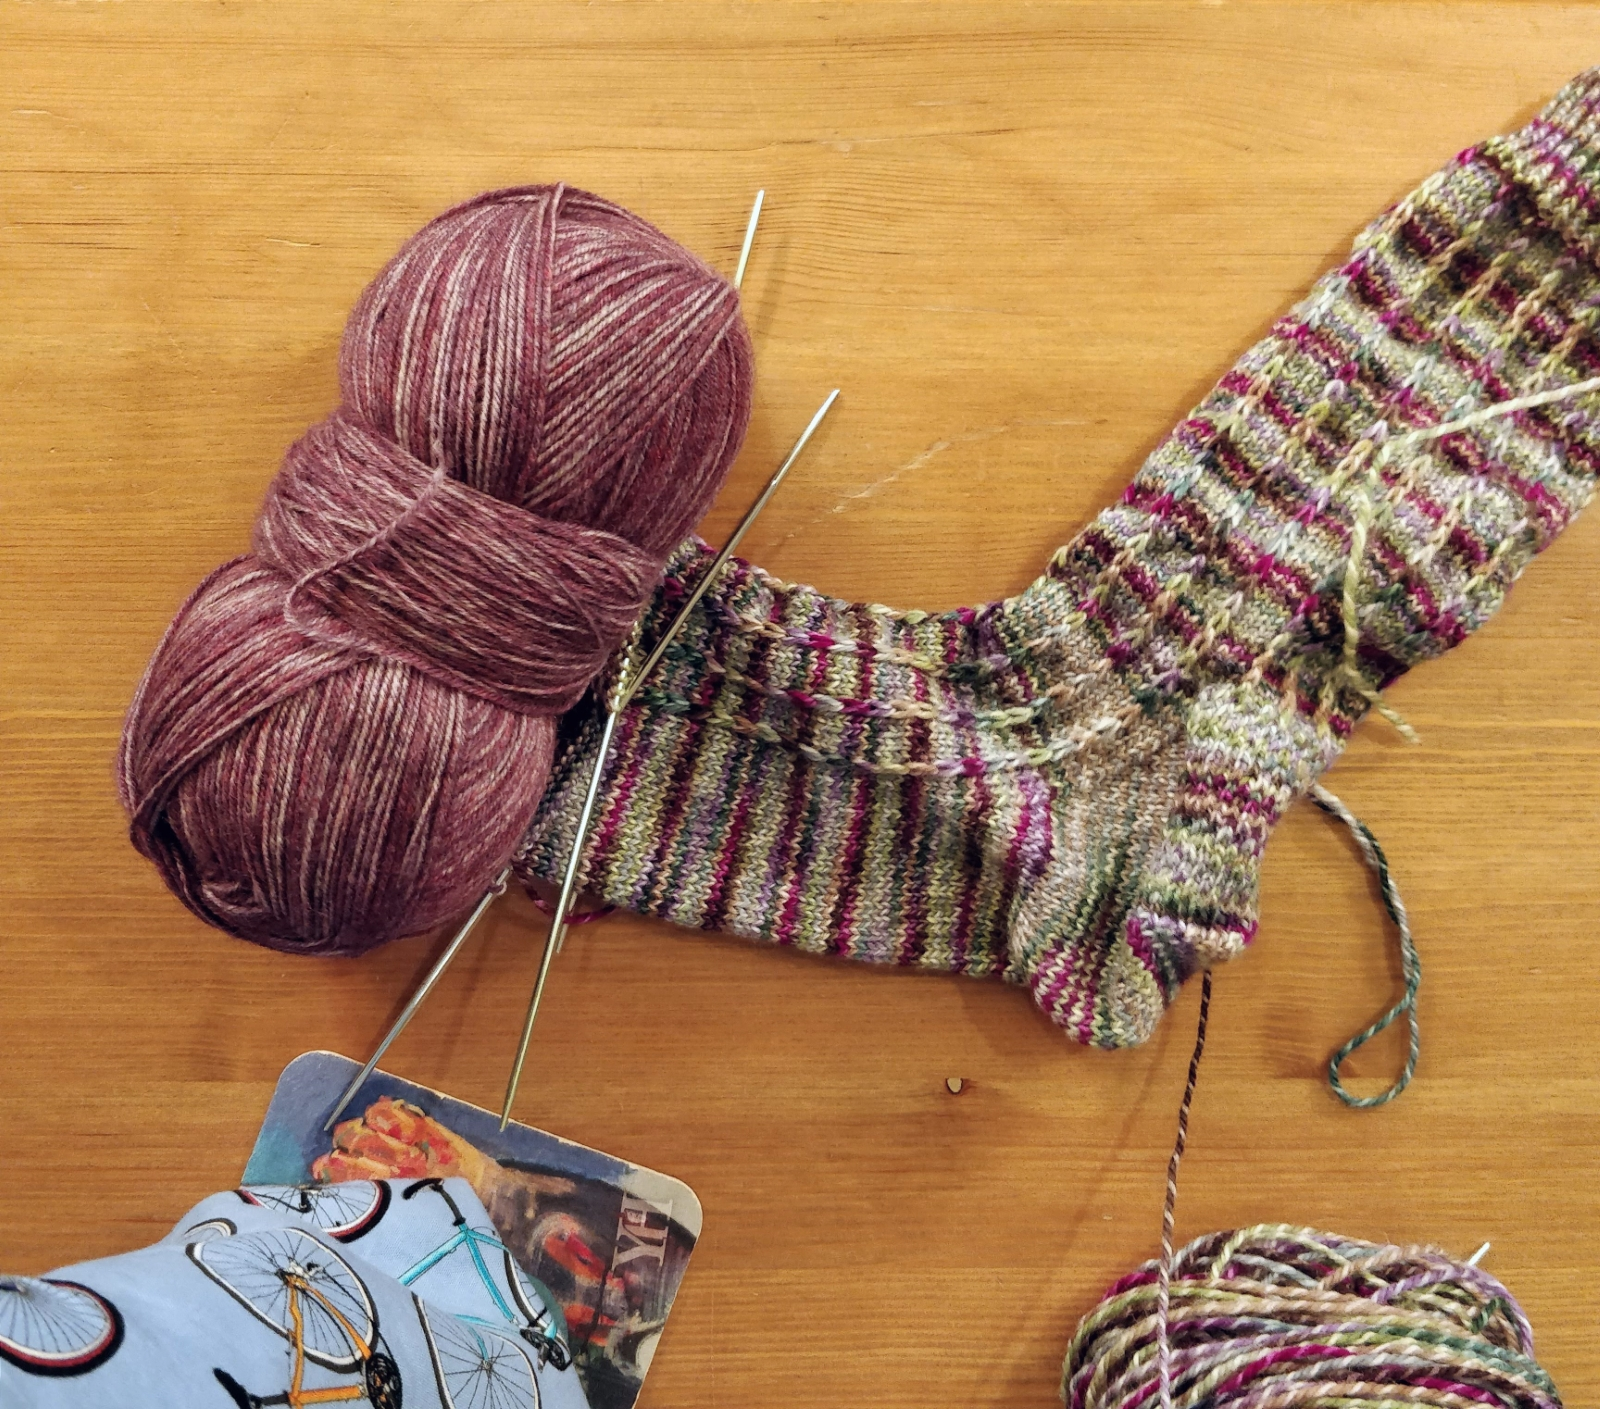 A partially completed sock in variegated shades of pink, green, tan, and blue, with a coordinating ball of pink yarn at the toe.